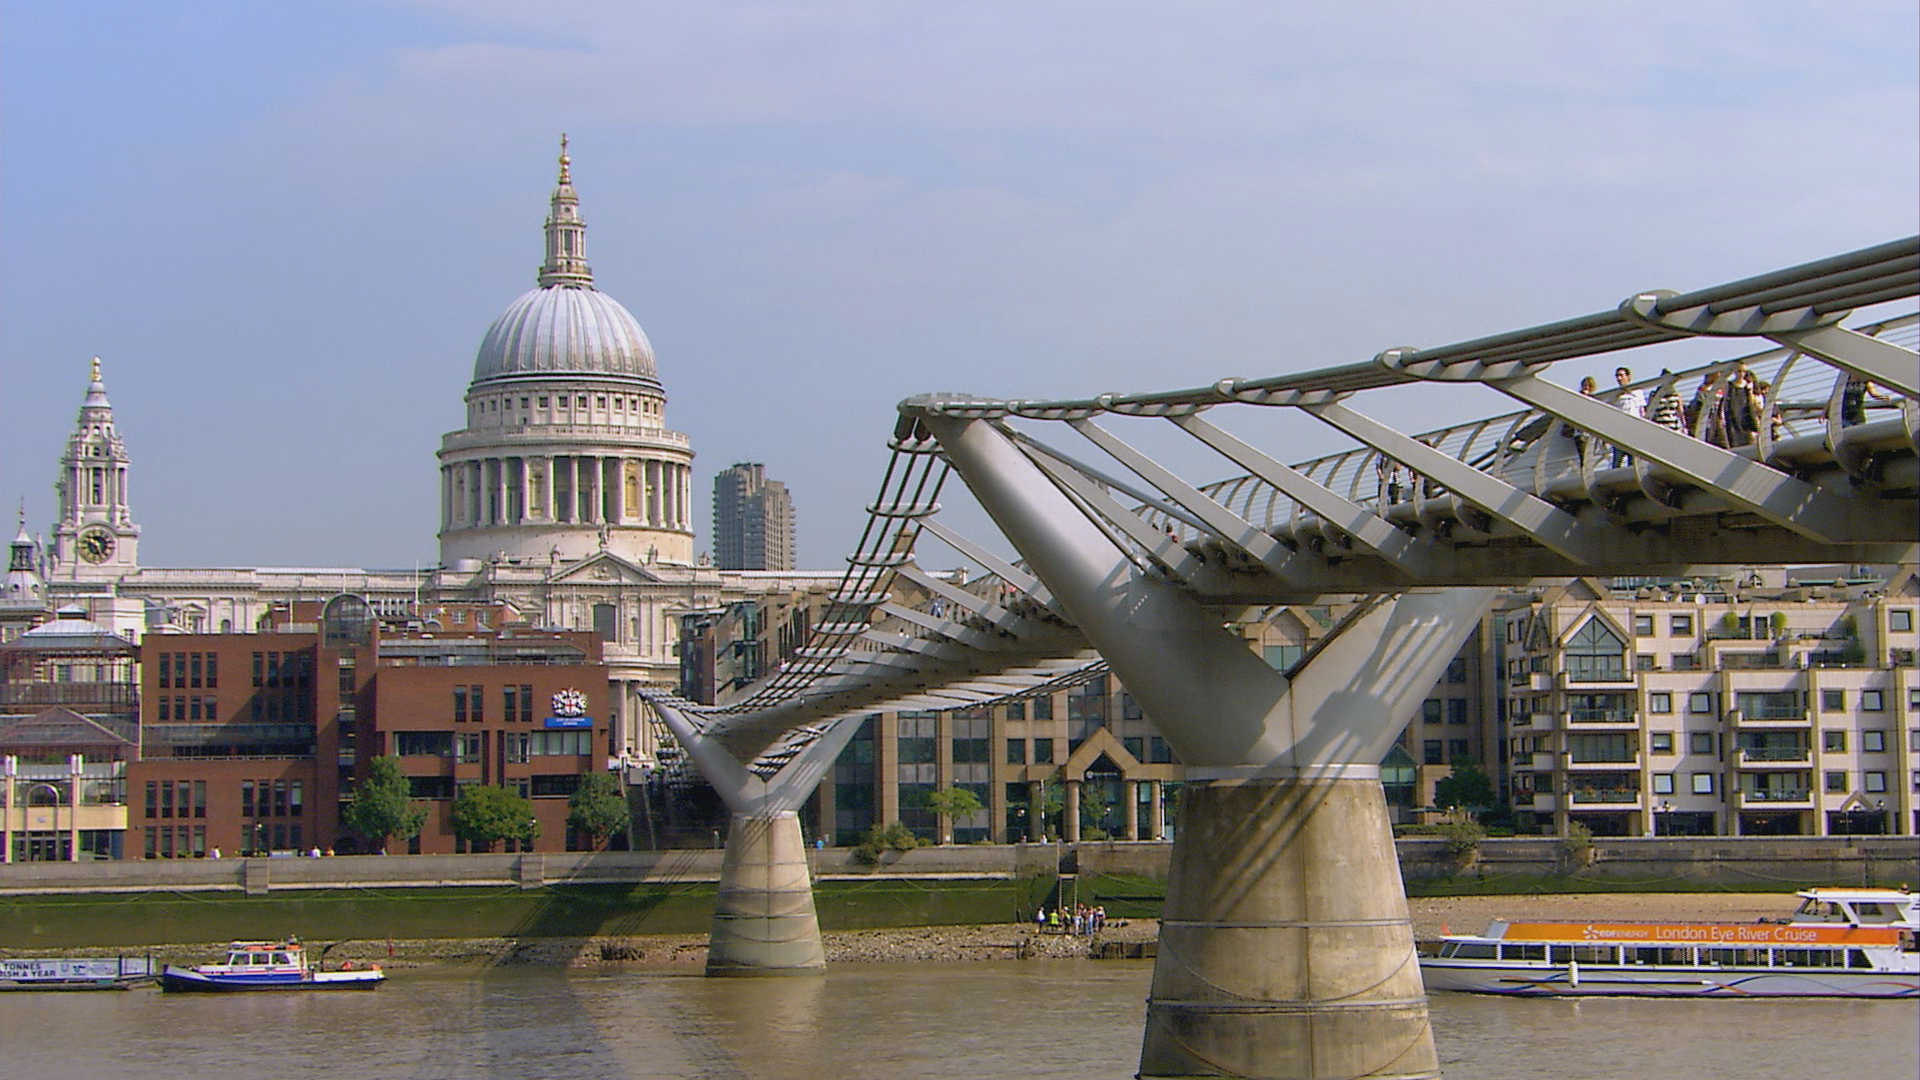 London: The Millennium Bridge